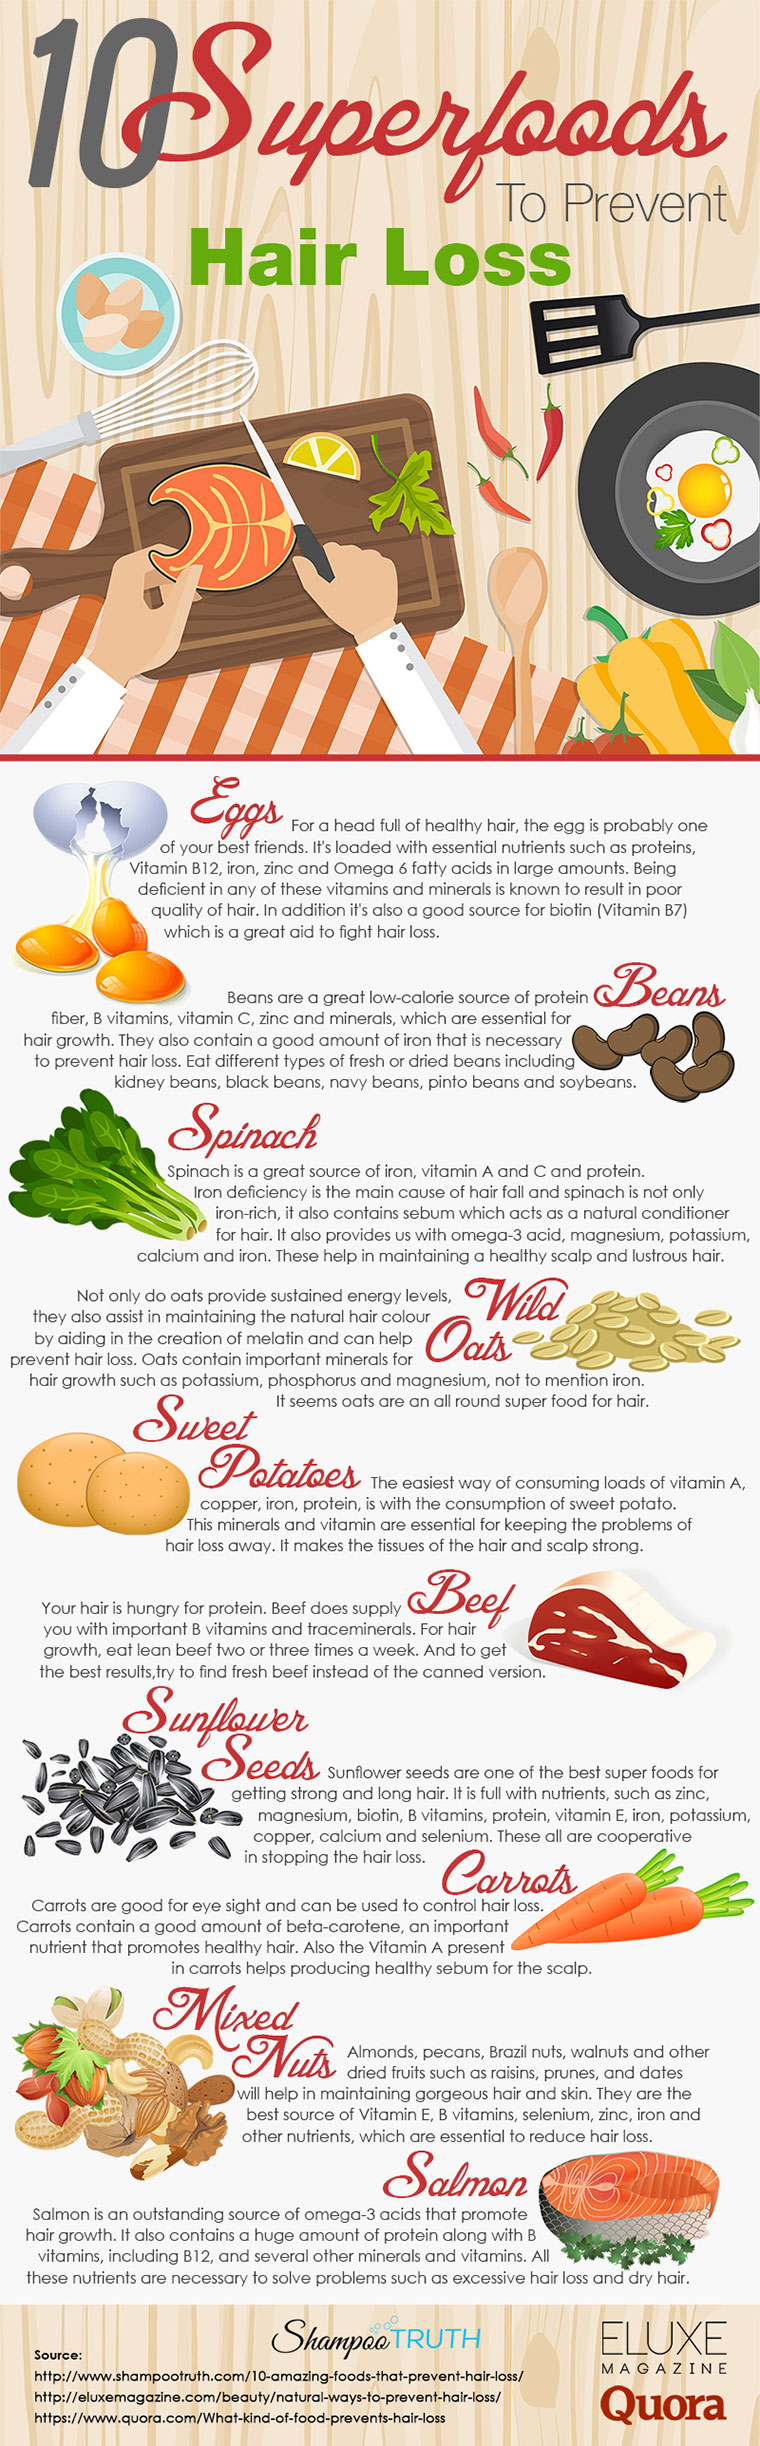 10 Superfoods To Prevent Hair Loss Infographic